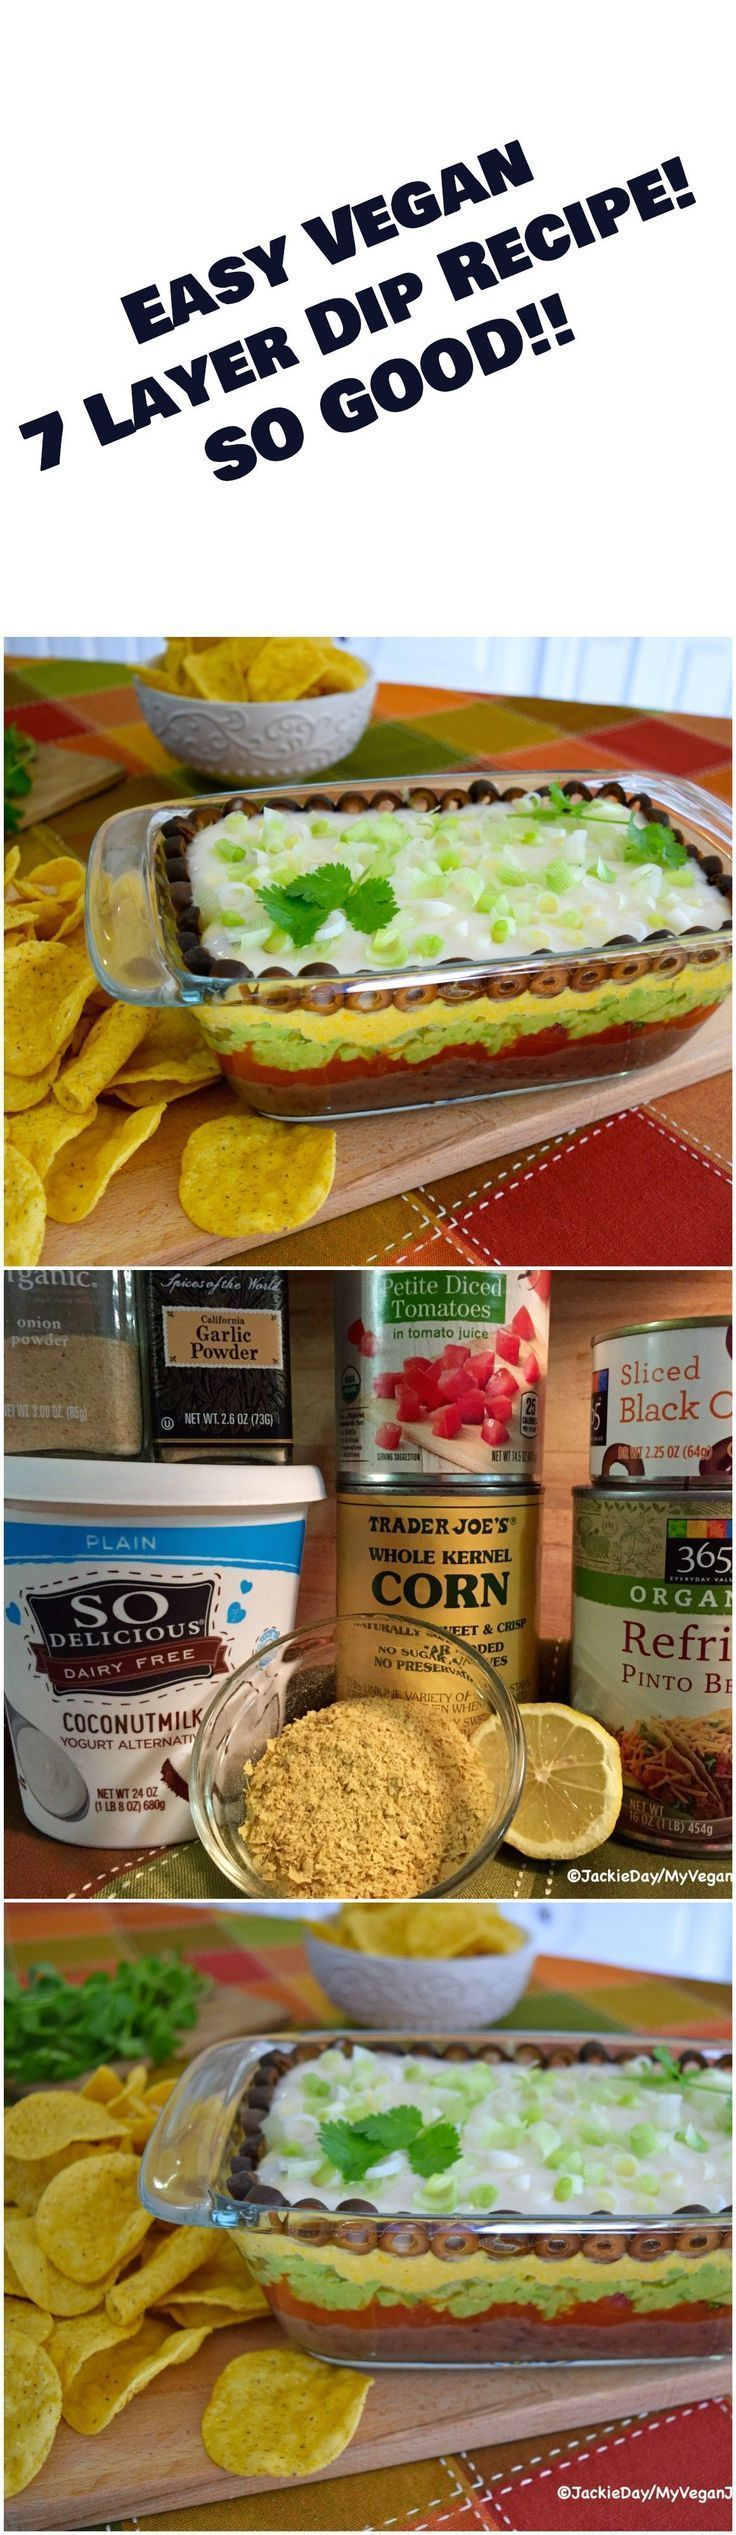 #recipe #bring #chips #layer #vegan #easy #dip #the #onEasy Vegan 7 Layer Dip Recipe! Bring on the Chips! Easy Vegan 7 Layer Dip Recipe! Bring on the Chips!, Easy Vegan 7 Layer Dip Recipe! Bring on the Chips!, #7layerdip #recipe #bring #chips #layer #vegan #easy #dip #the #onEasy Vegan 7 Layer Dip Recipe! Bring on the Chips! Easy Vegan 7 Layer Dip Recipe! Bring on the Chips!, Easy Vegan 7 Layer Dip Recipe! Bring on the Chips!, #7layerdip